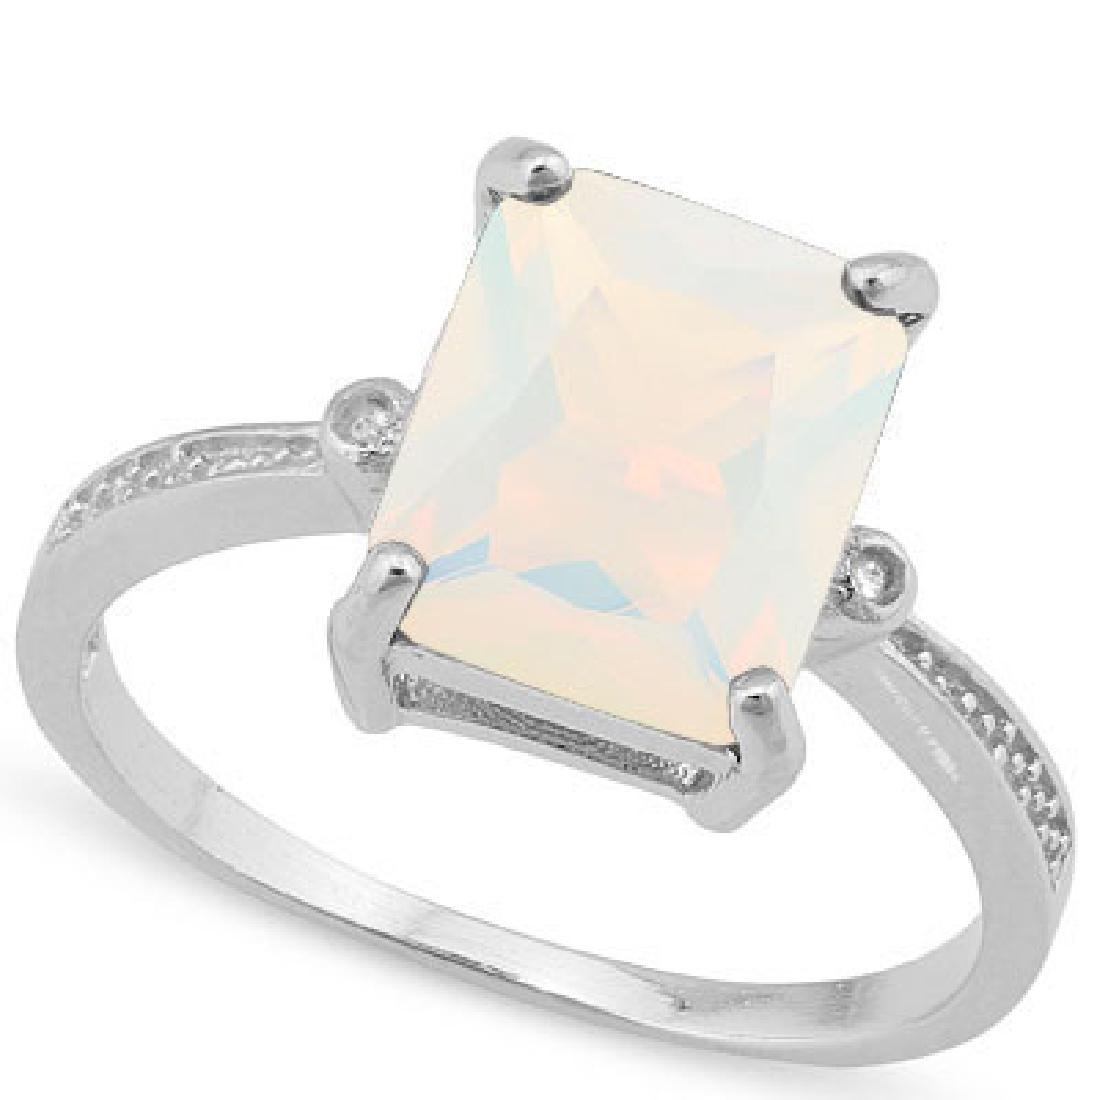 GLAM BAGUETTE CUT 2CT FIRE OPAL STERLING RING